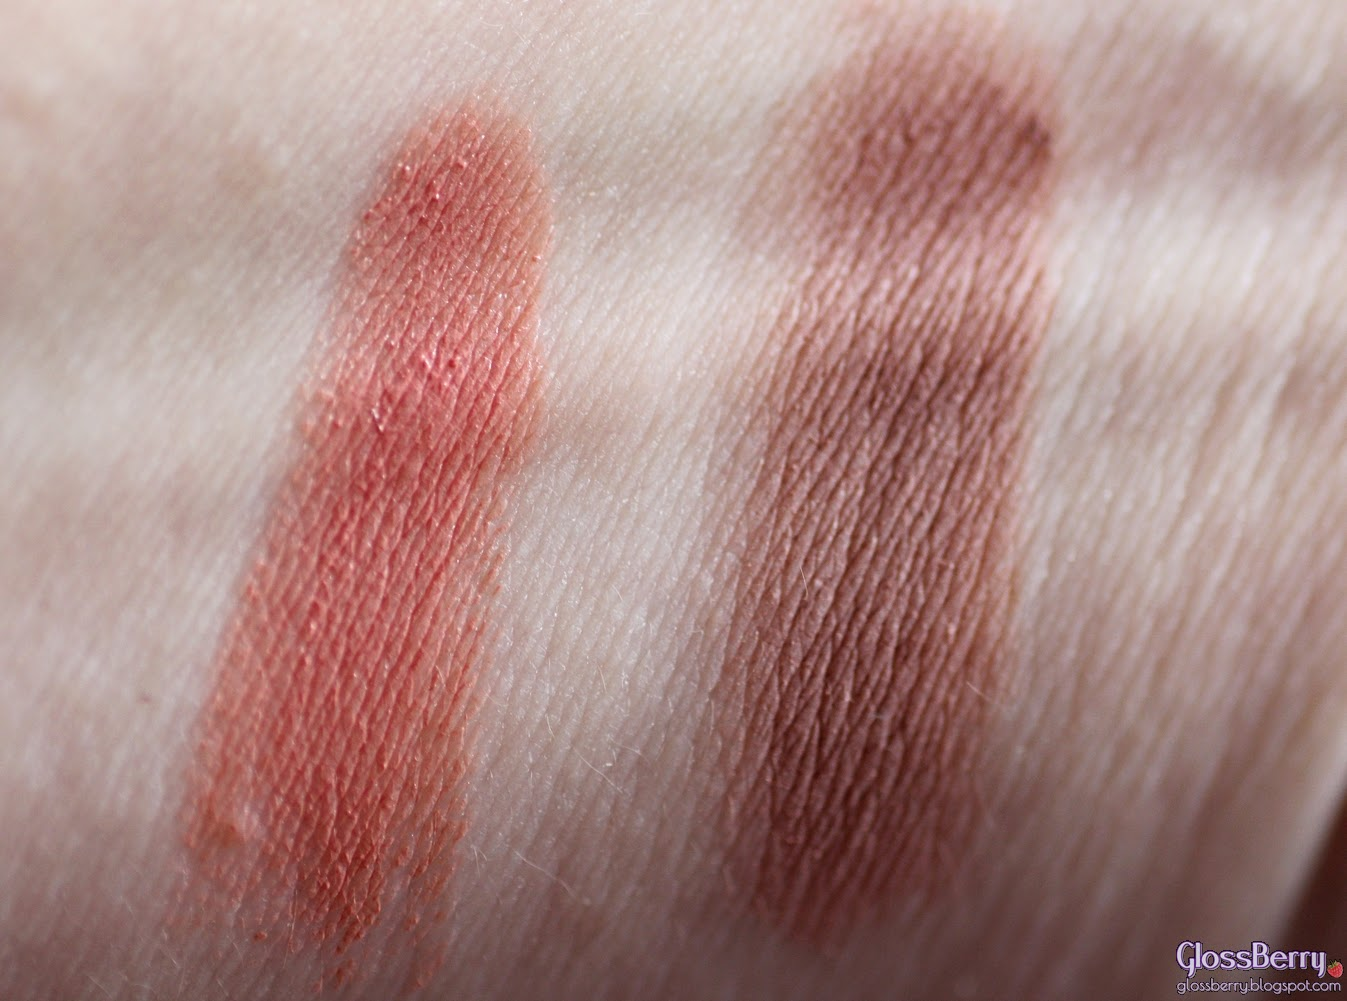 GIVENCHY Ombre Couture - 3 - Rose Dentelle review swatches glossberry צללית קרם ג'יבנשי גלוסברי בלוג איפור וטיפוח